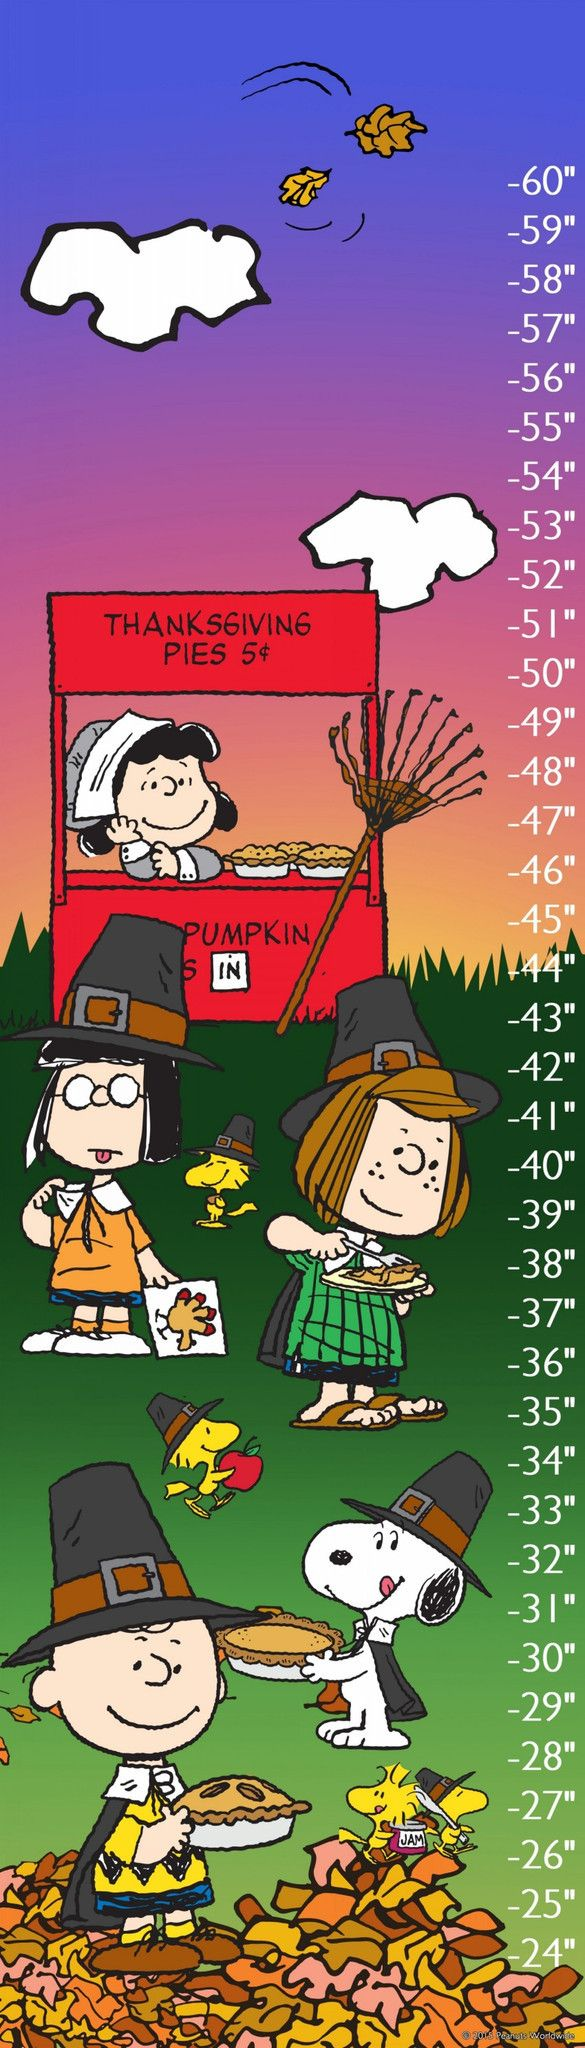 Description: Celebrate the Thanksgiving season with the Peanuts on this child's growth chart. Featuring a brightly color background, this rolled canvas chart show Peanuts characters raking leaves and